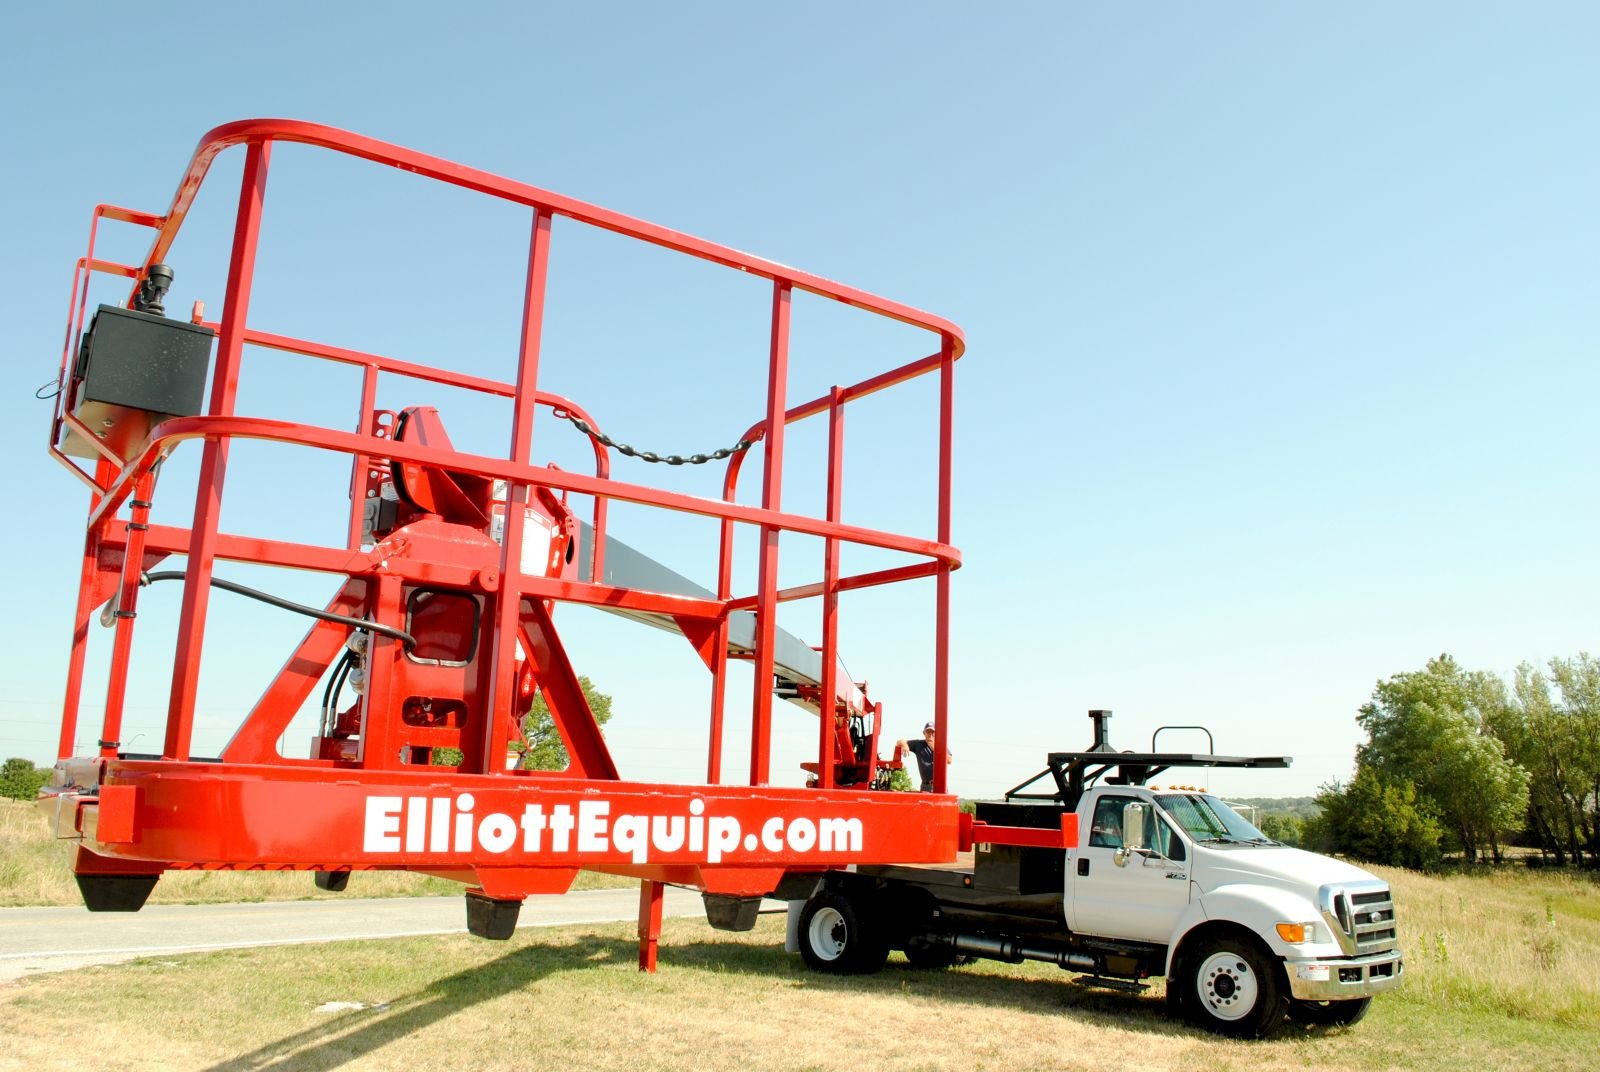 Elliott Equipment HiReach Aerial Work Platforms